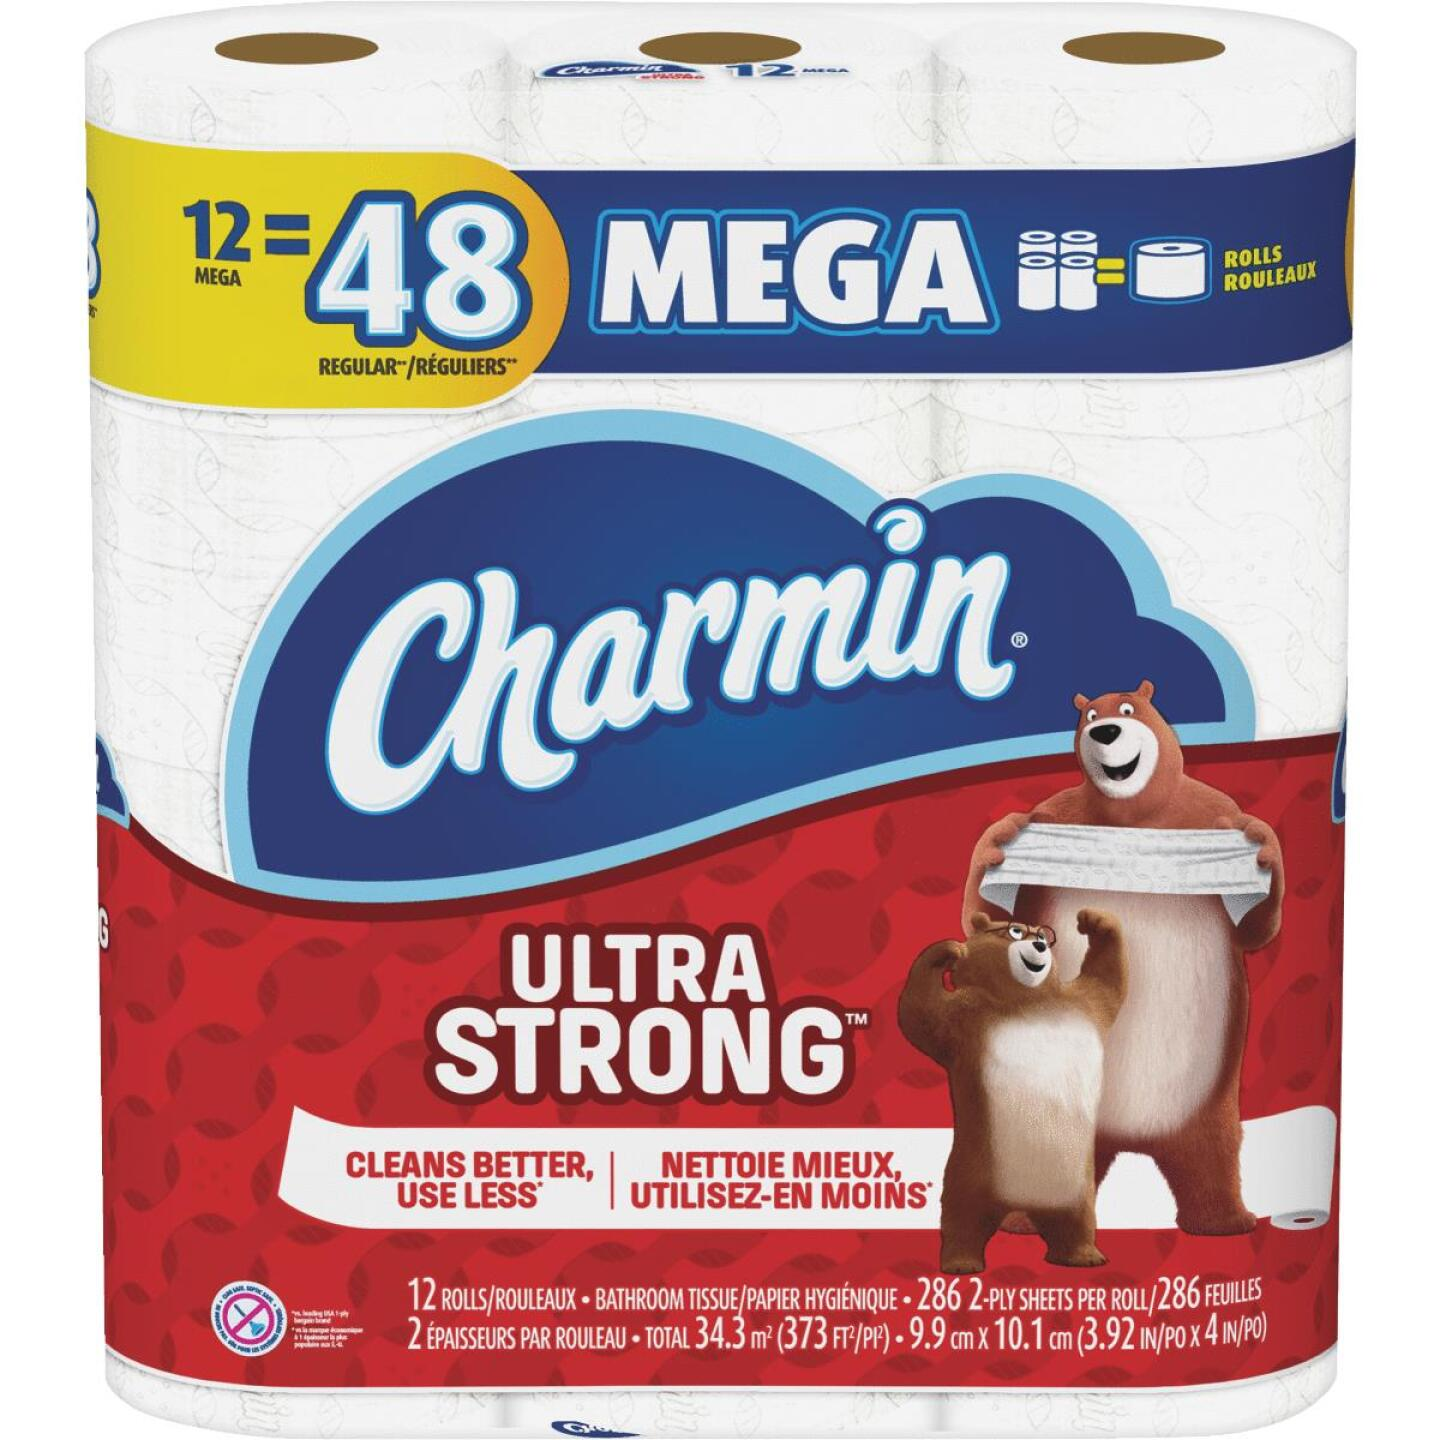 Charmin Ultra Strong Toilet Paper (12 Mega Rolls) Image 1